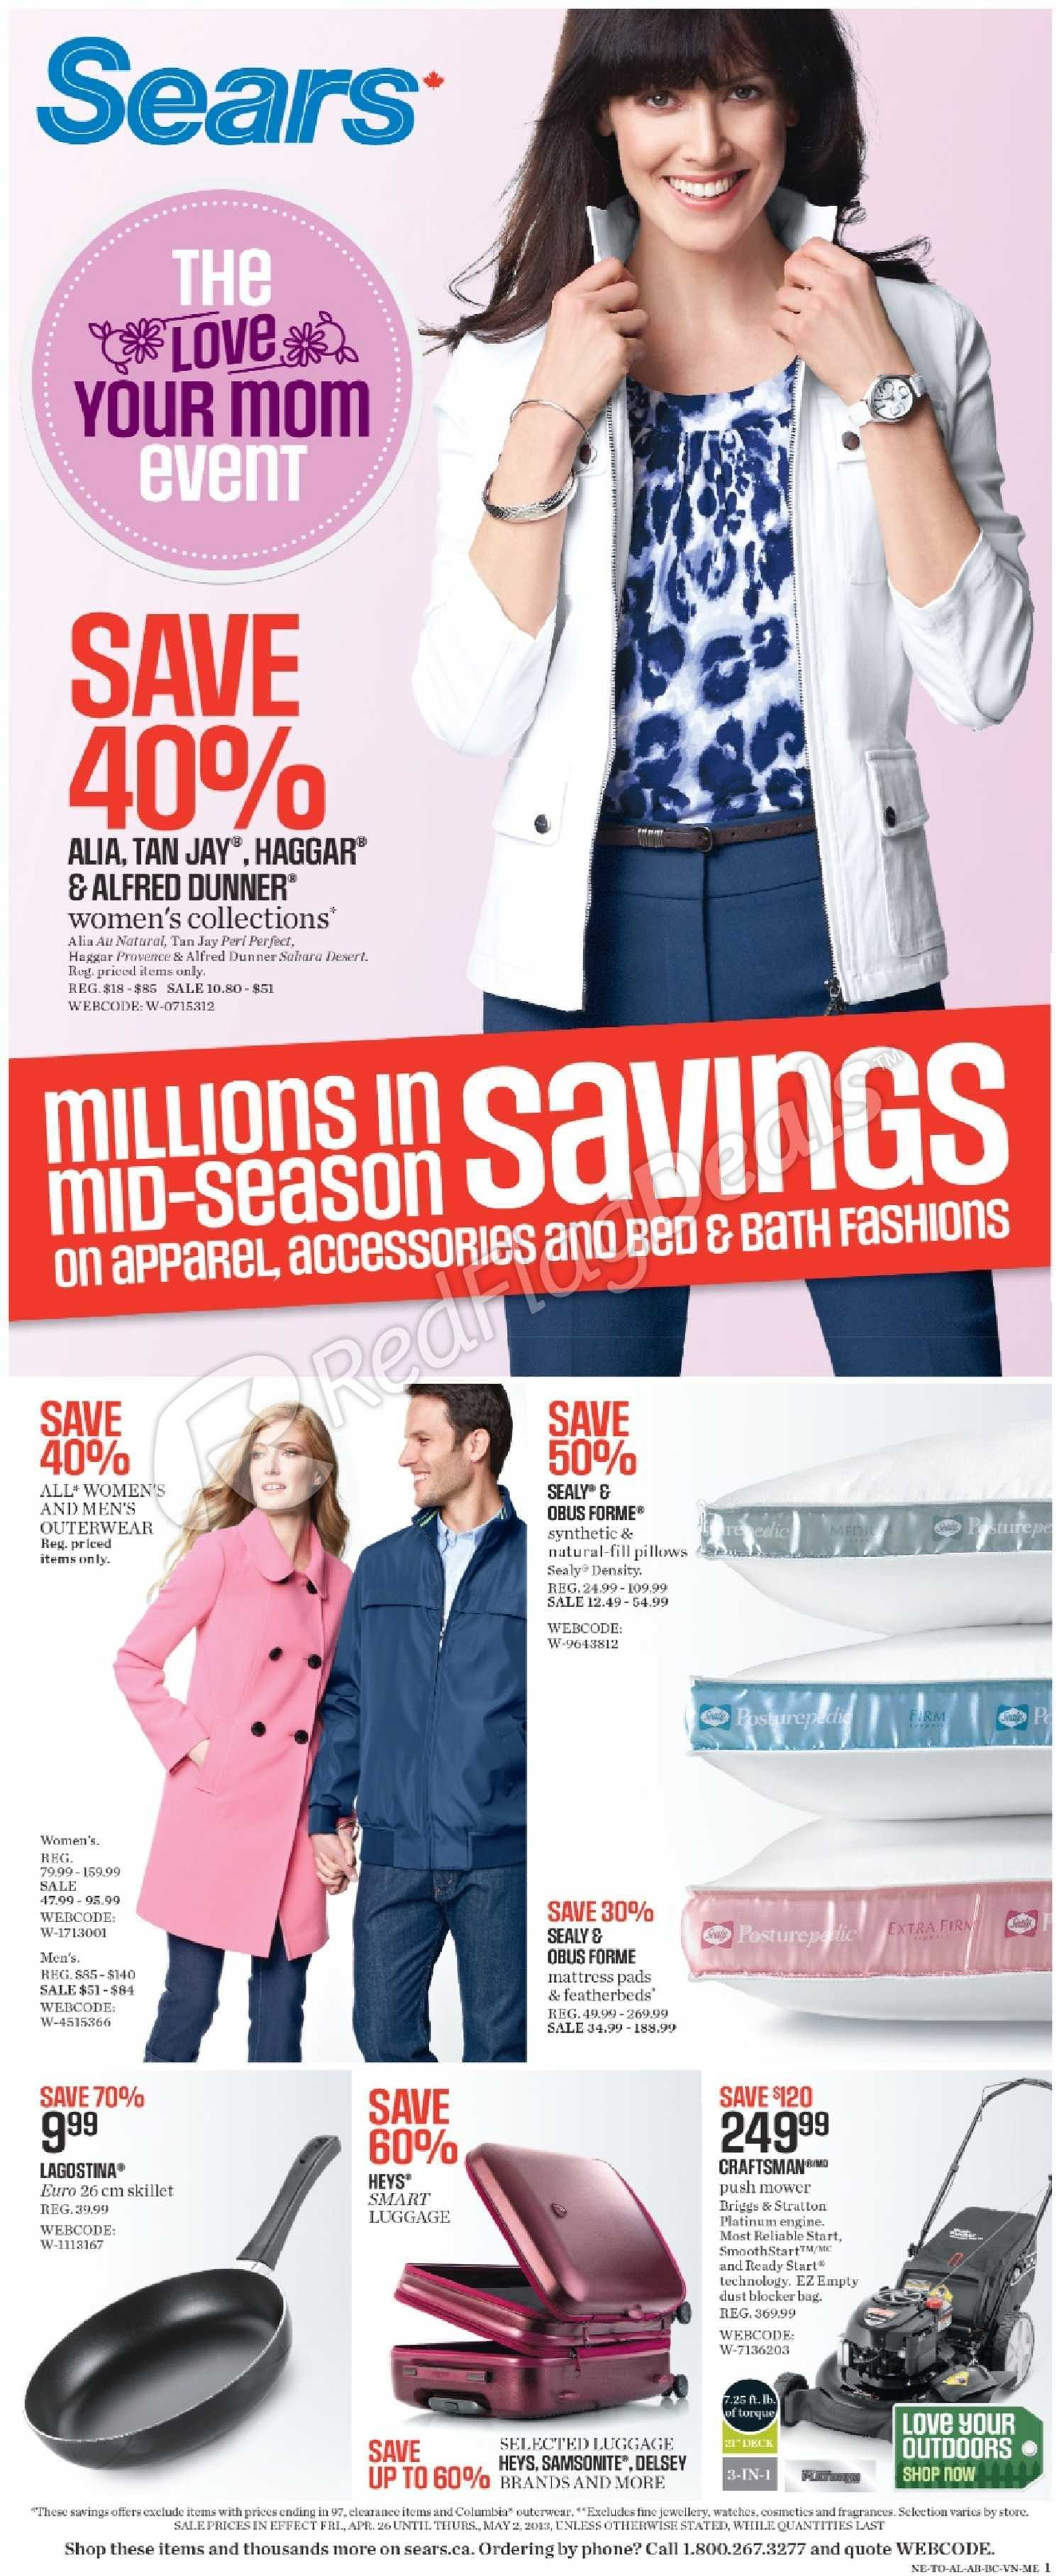 Sears Weekly Flyer Weekly Flyer The Love Your Mom